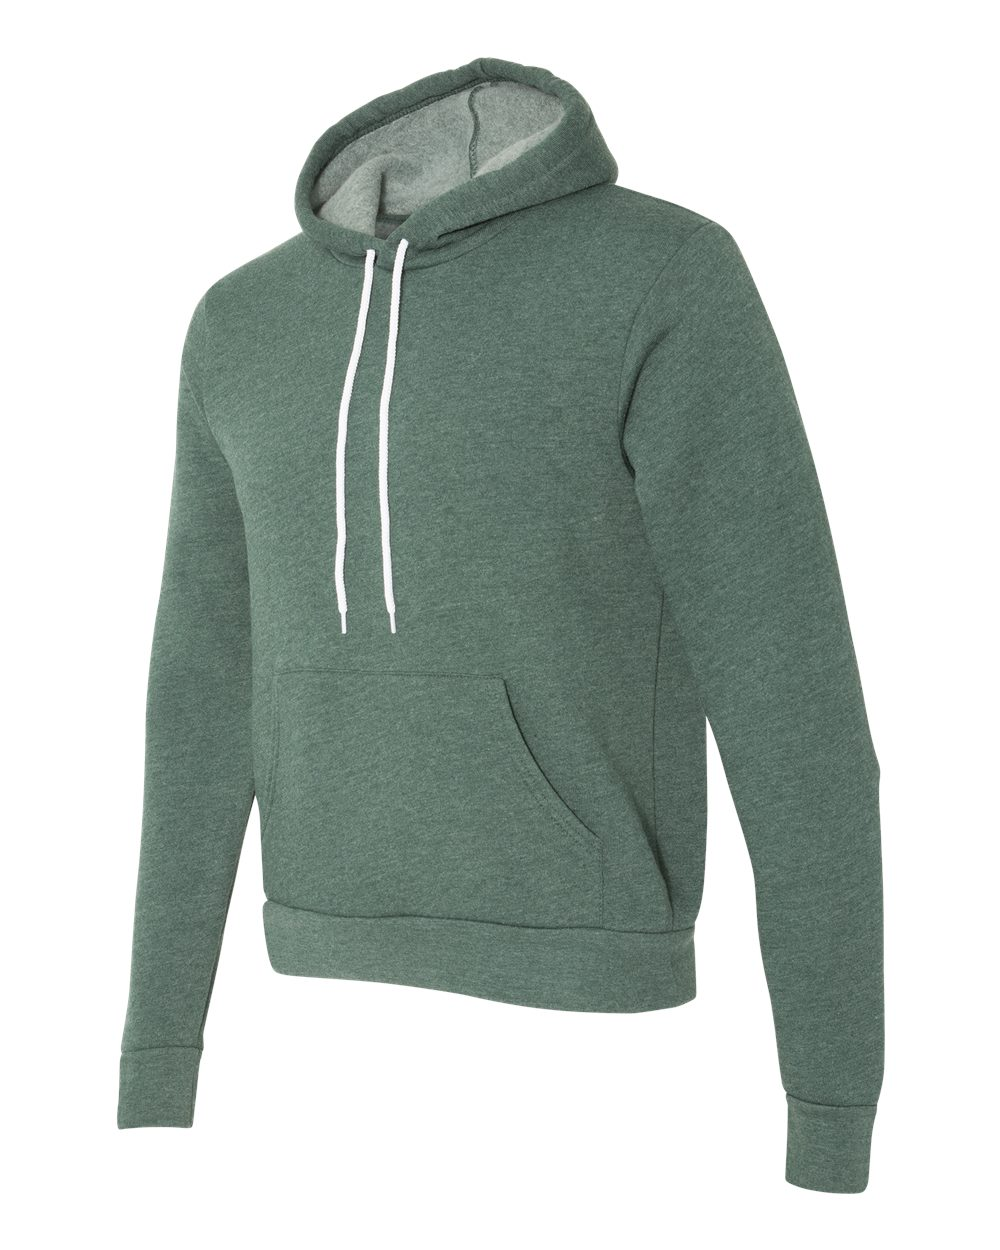 Canvas Unisex Poly//Cotton Hooded Pullover Sweatshirt 3719 XS-2XL Hoodie